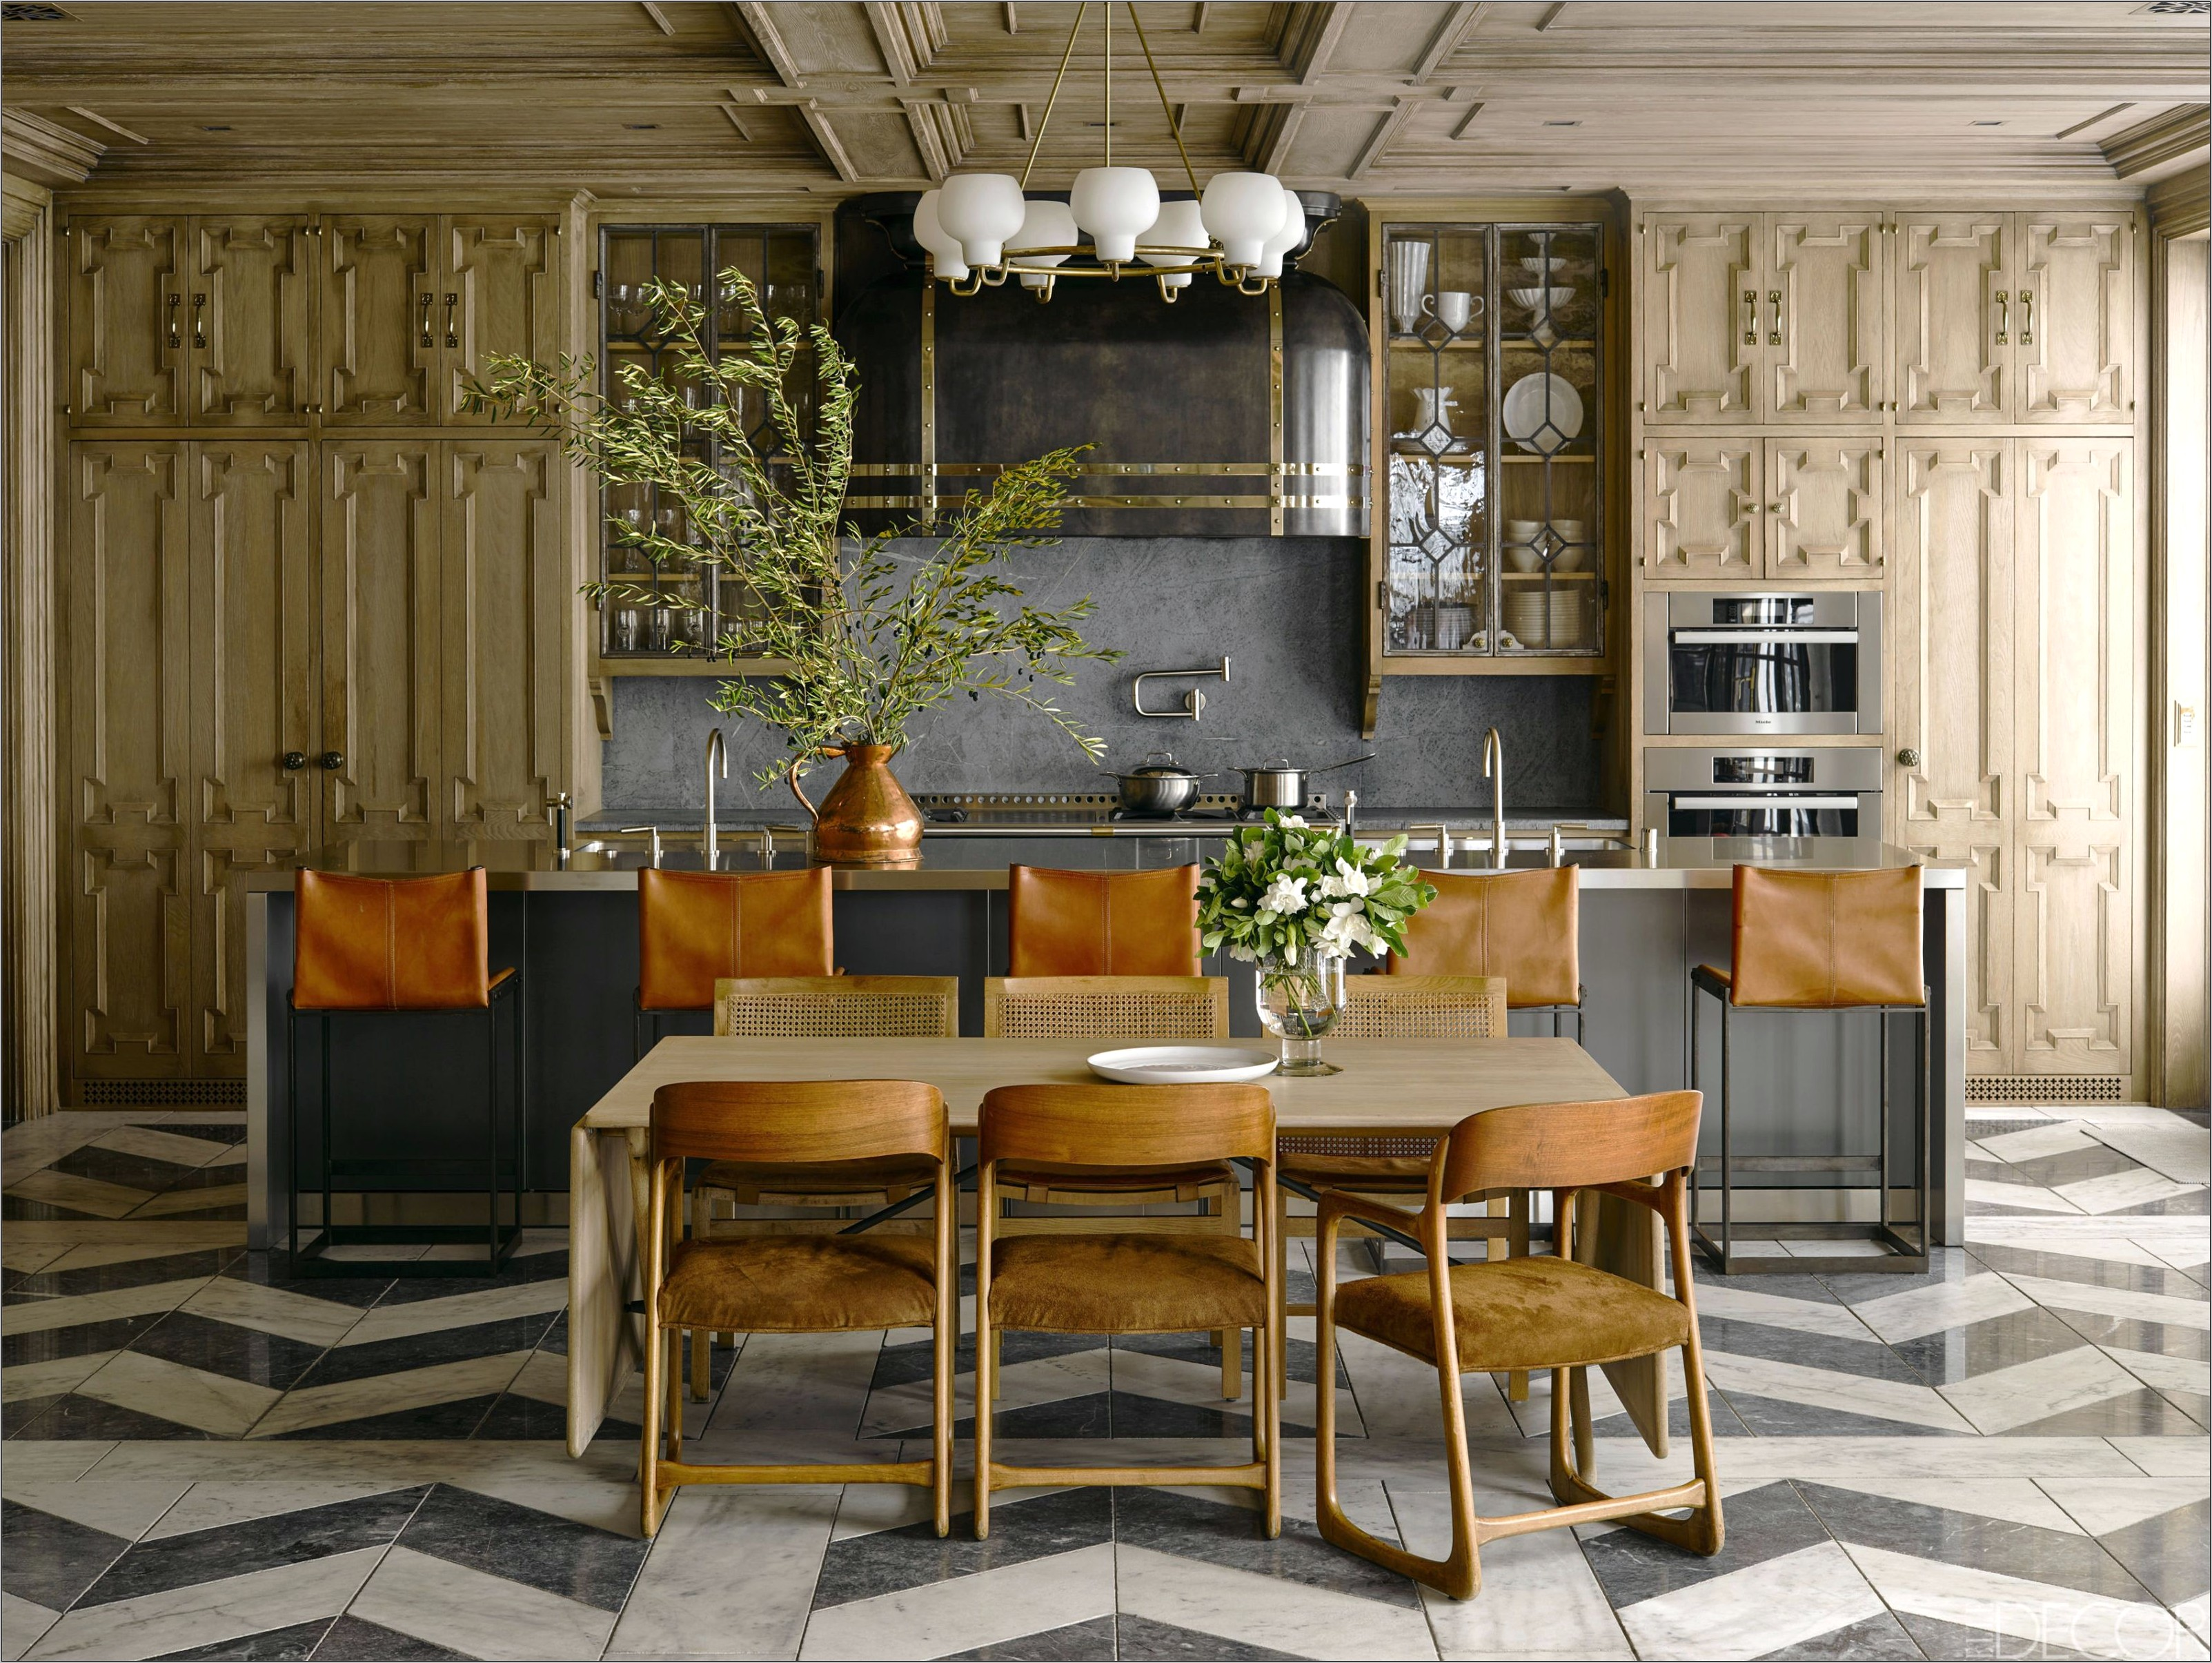 French Countryside Kitchen Decor